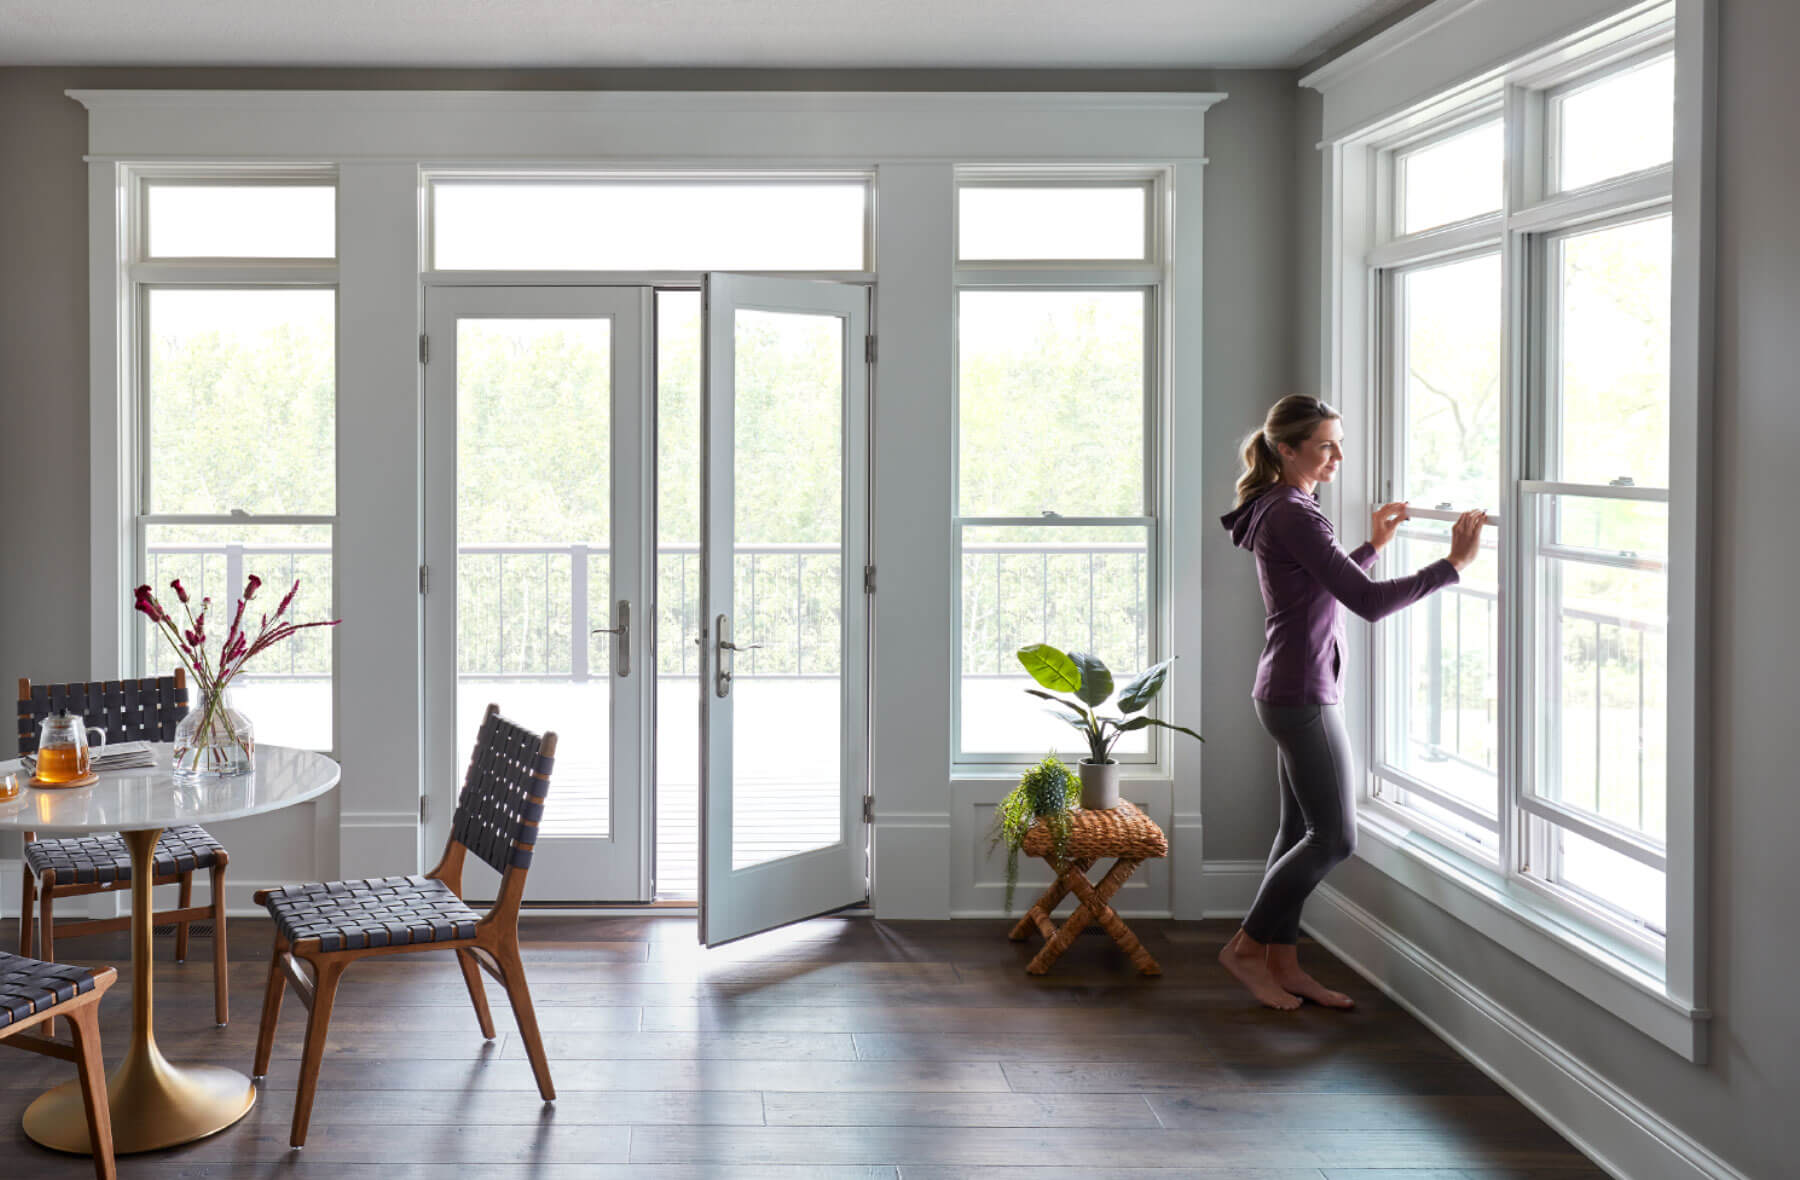 sunroom-french-doors-doublehung-windows